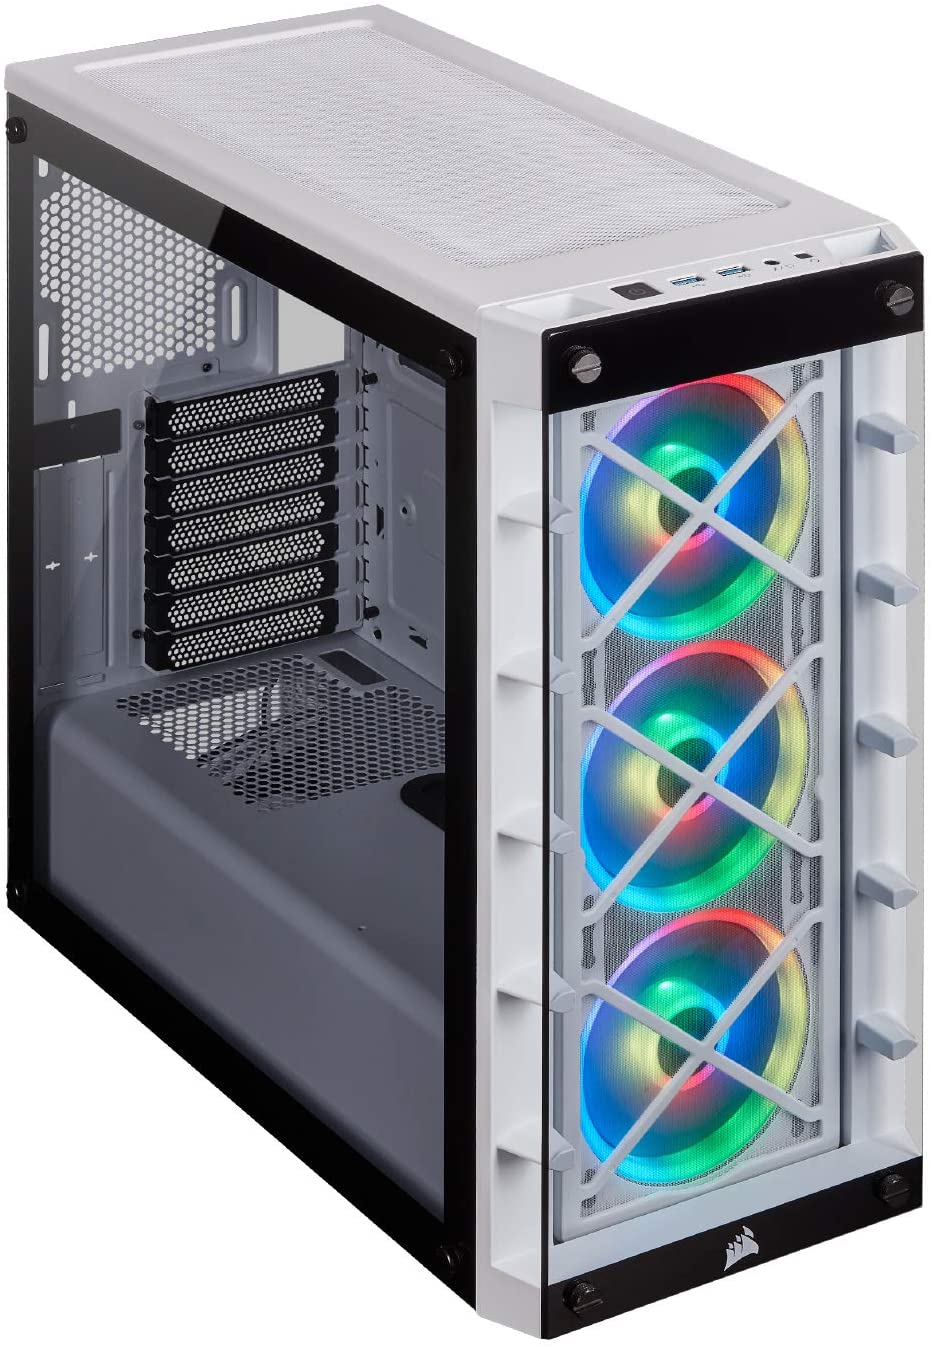 gabinete gamer Corsair Icue 465X RGB Mid-Tower ATX blanco